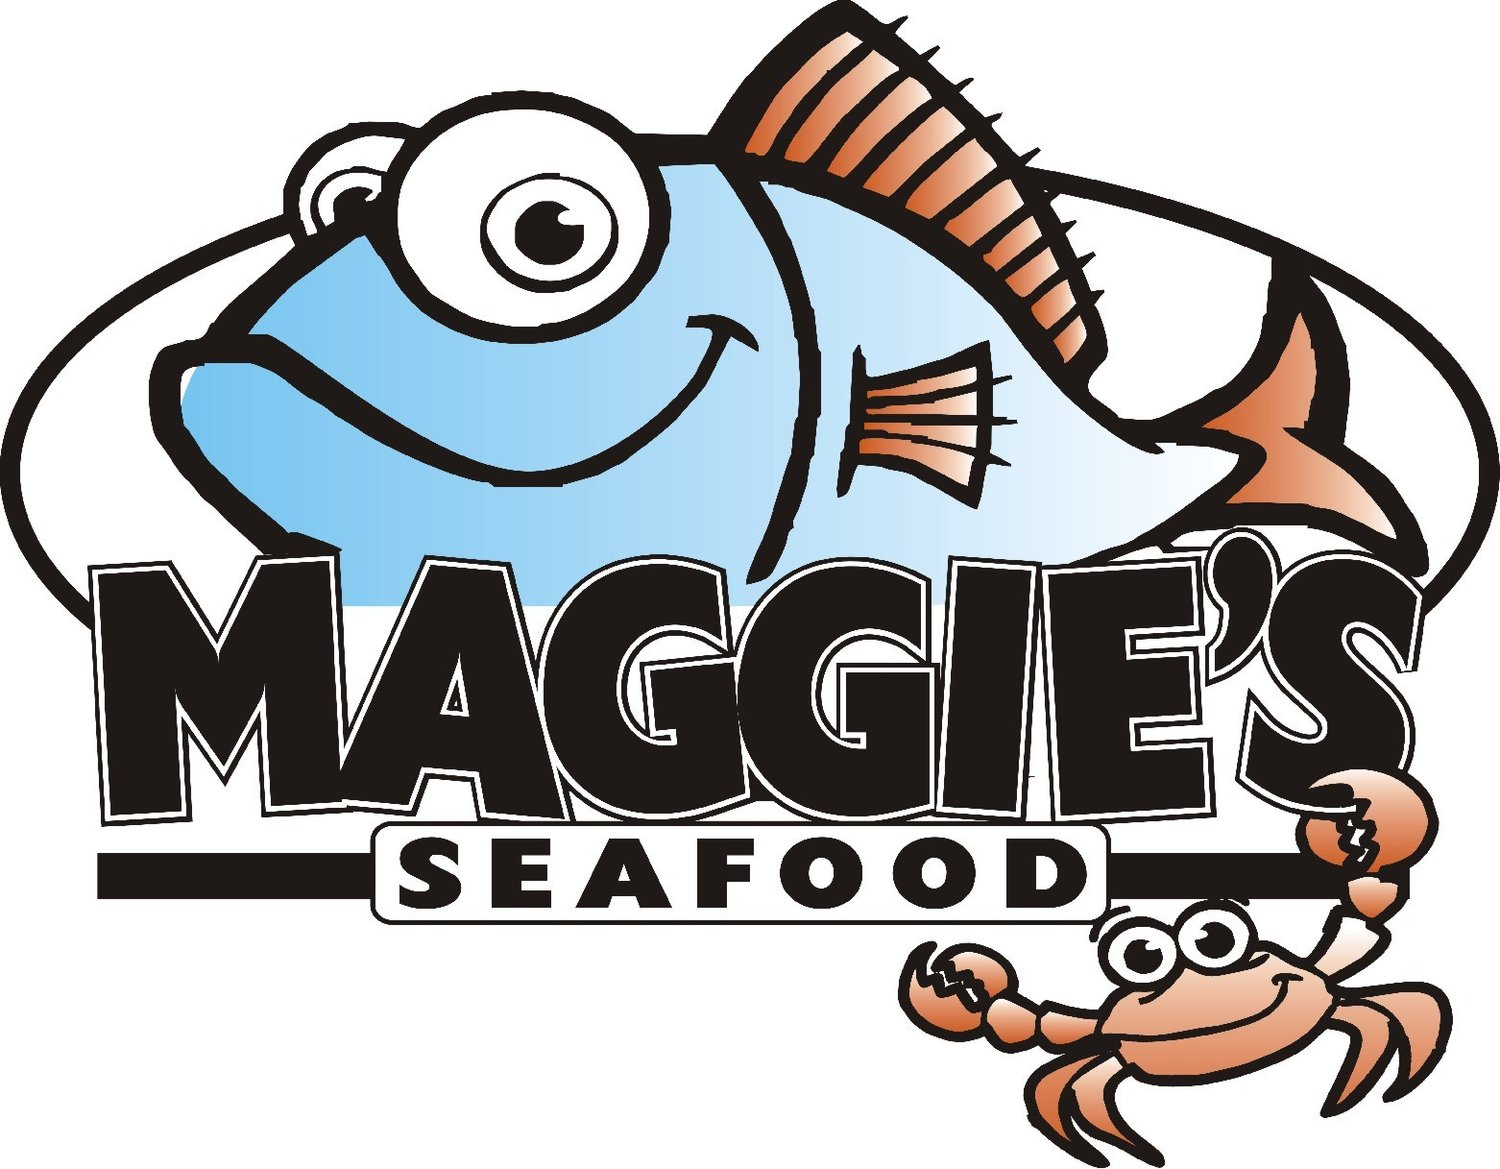 Maggie's Seafood